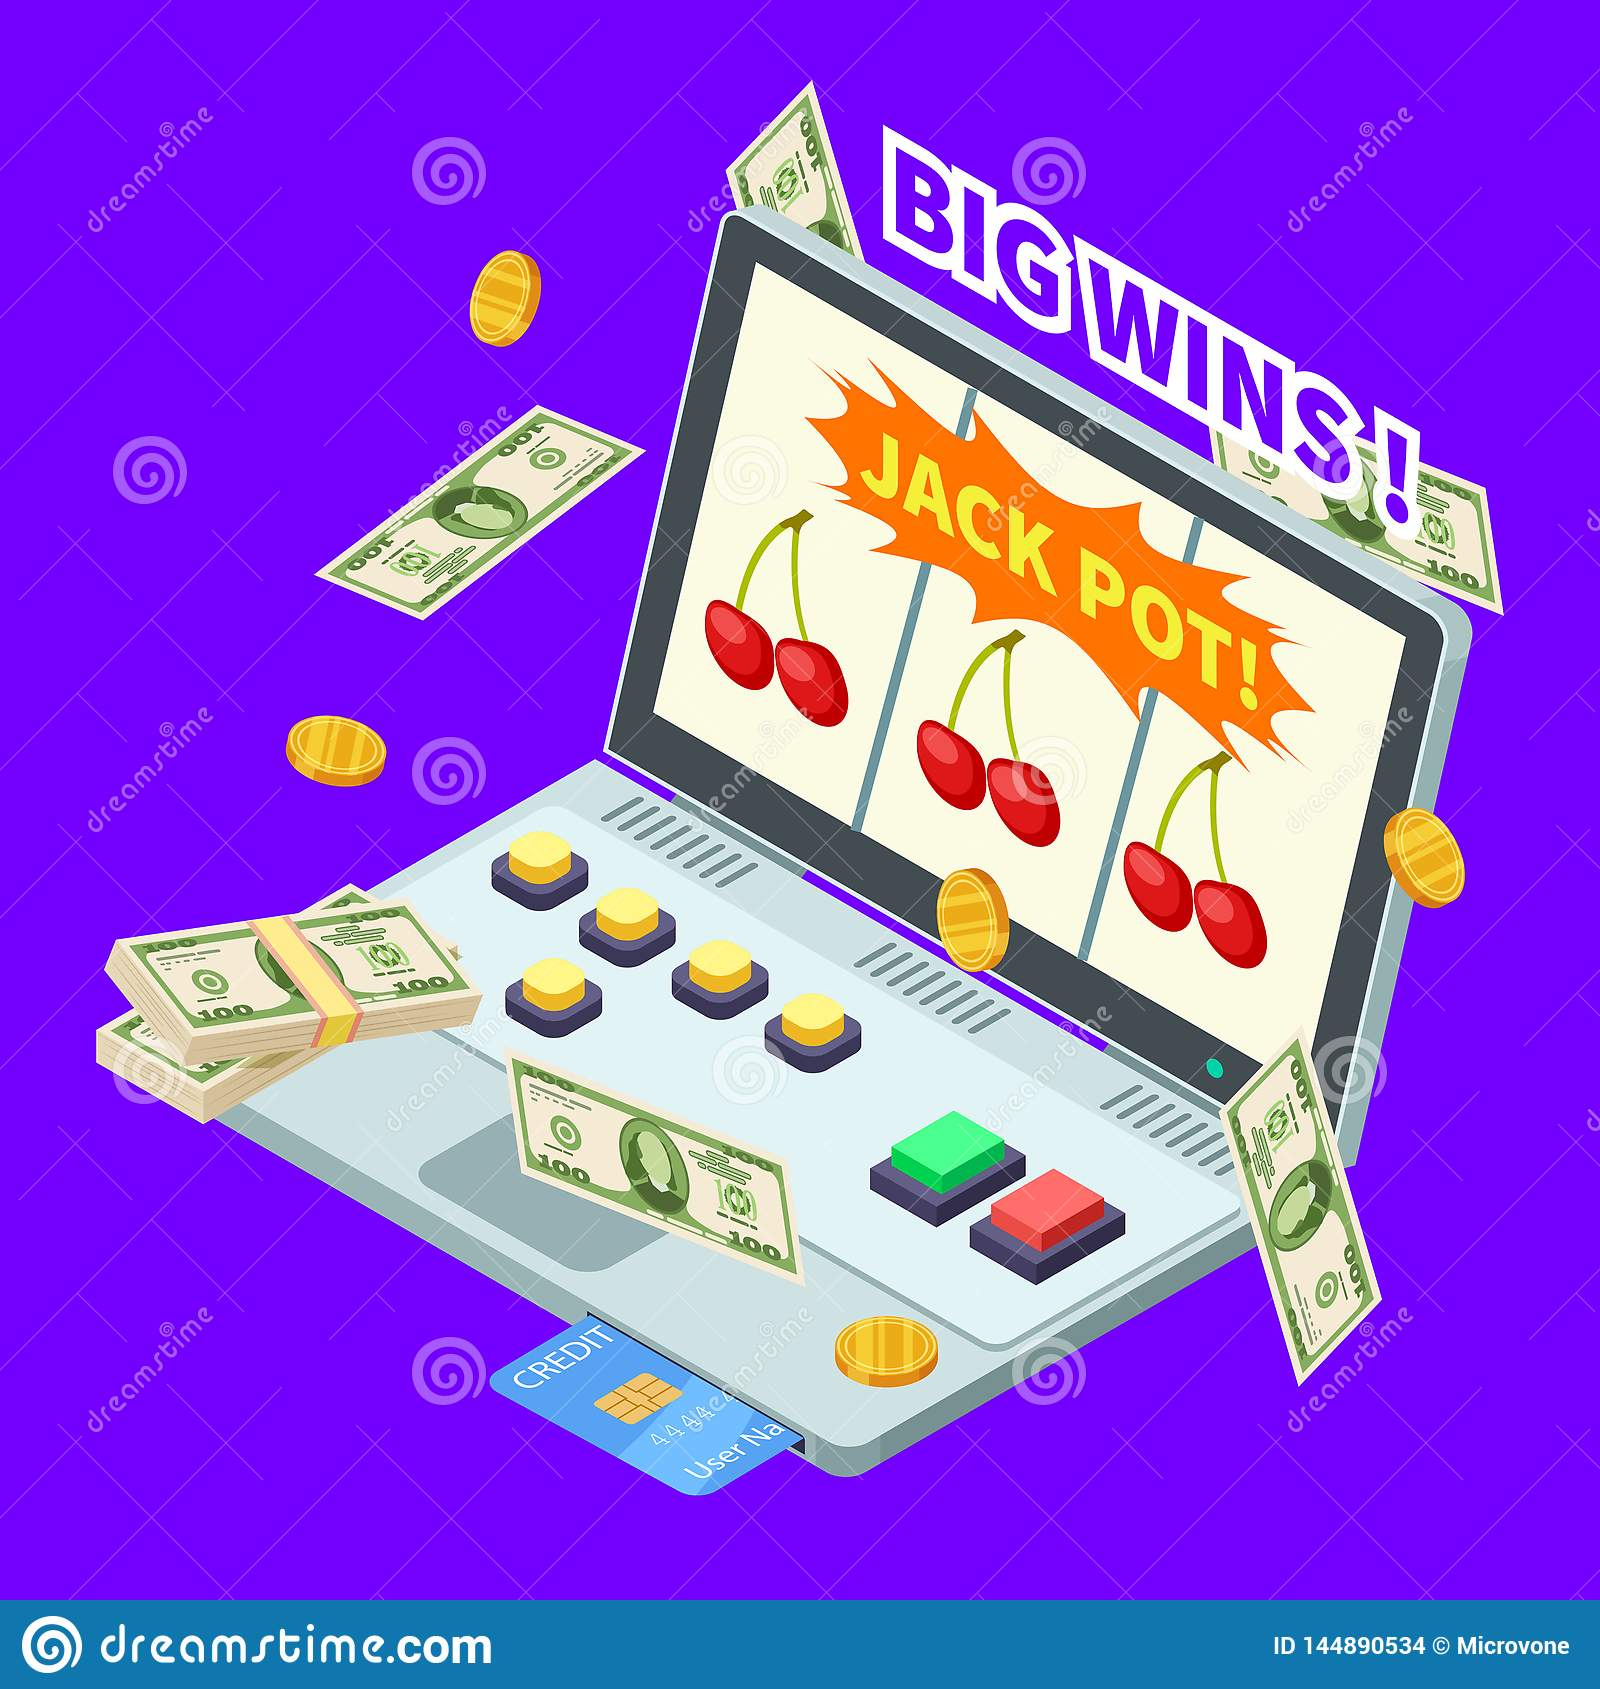 Online casino, jackpot win, banknotes, coins and credit card on laptop isometric vector illustration